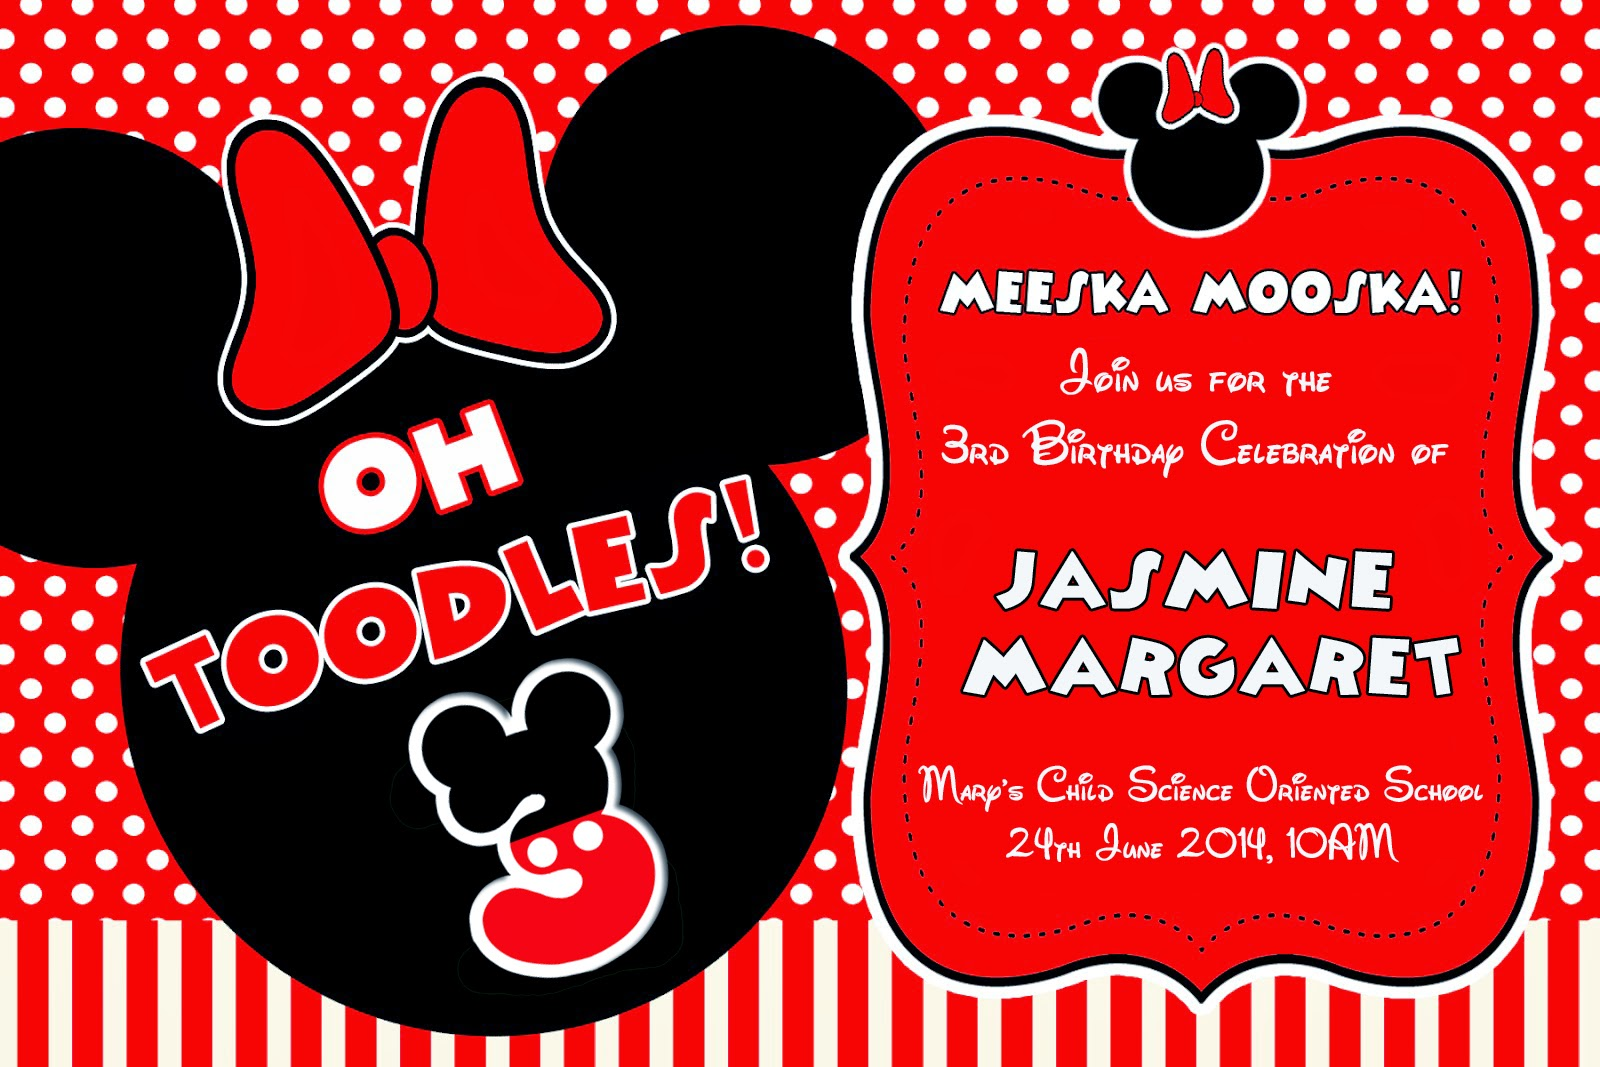 Awesome Minnie Mouse Party Invitation Vignette - Invitations and ...